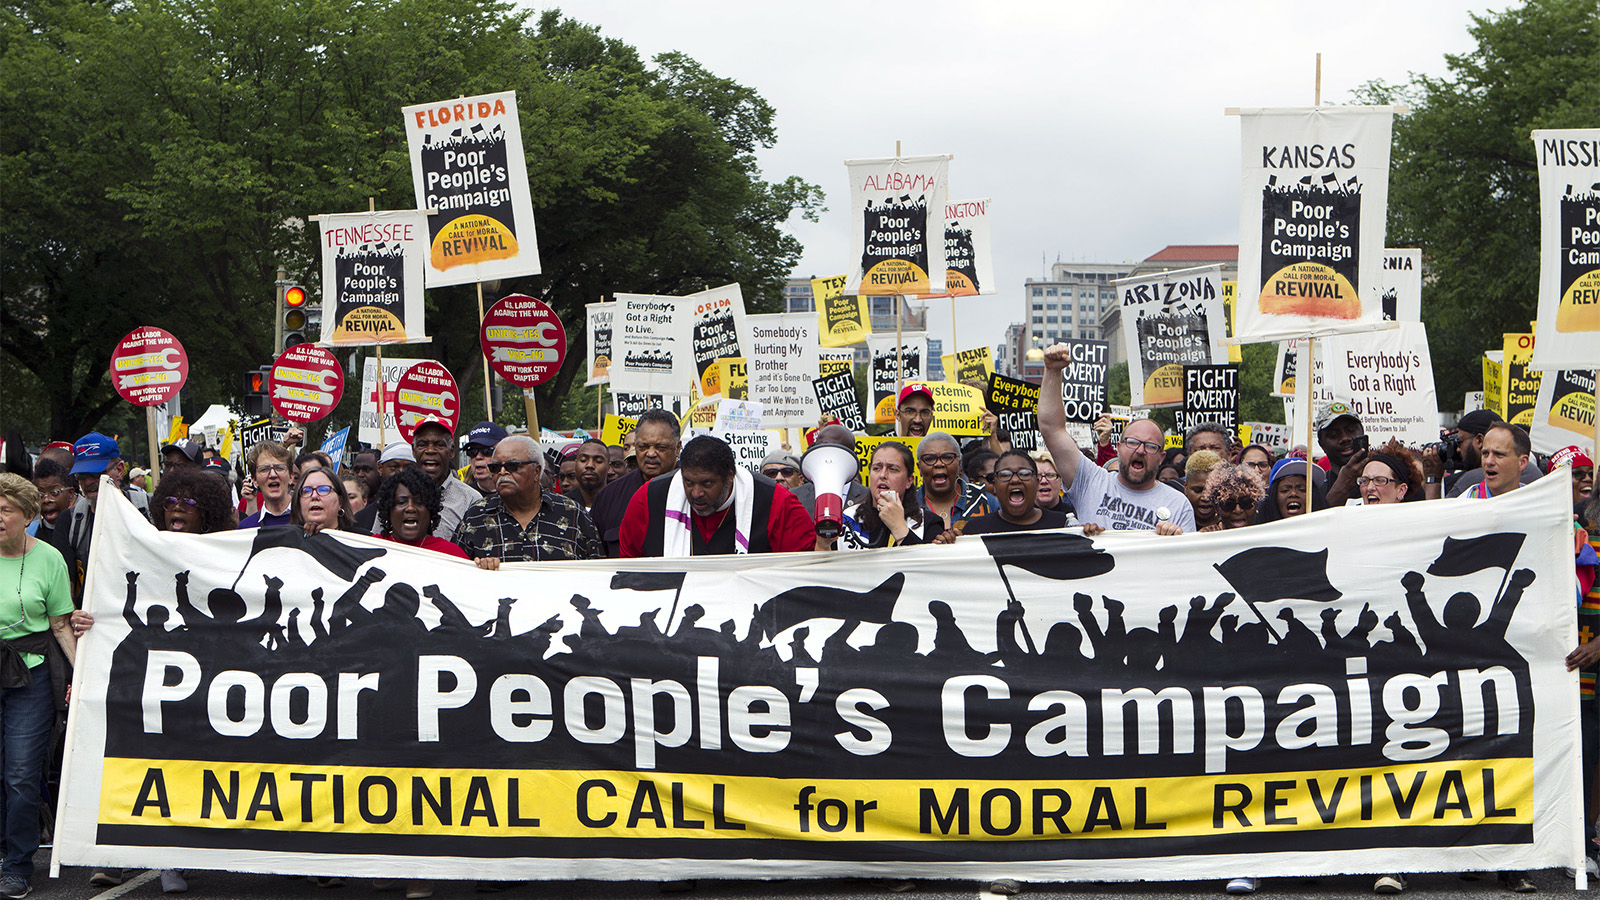 Demonstrators march outside the U.S. Capitol during the Poor People's Campaign rally at the National Mall in Washington on June 23, 2018. (AP Photo/Jose Luis Magana)